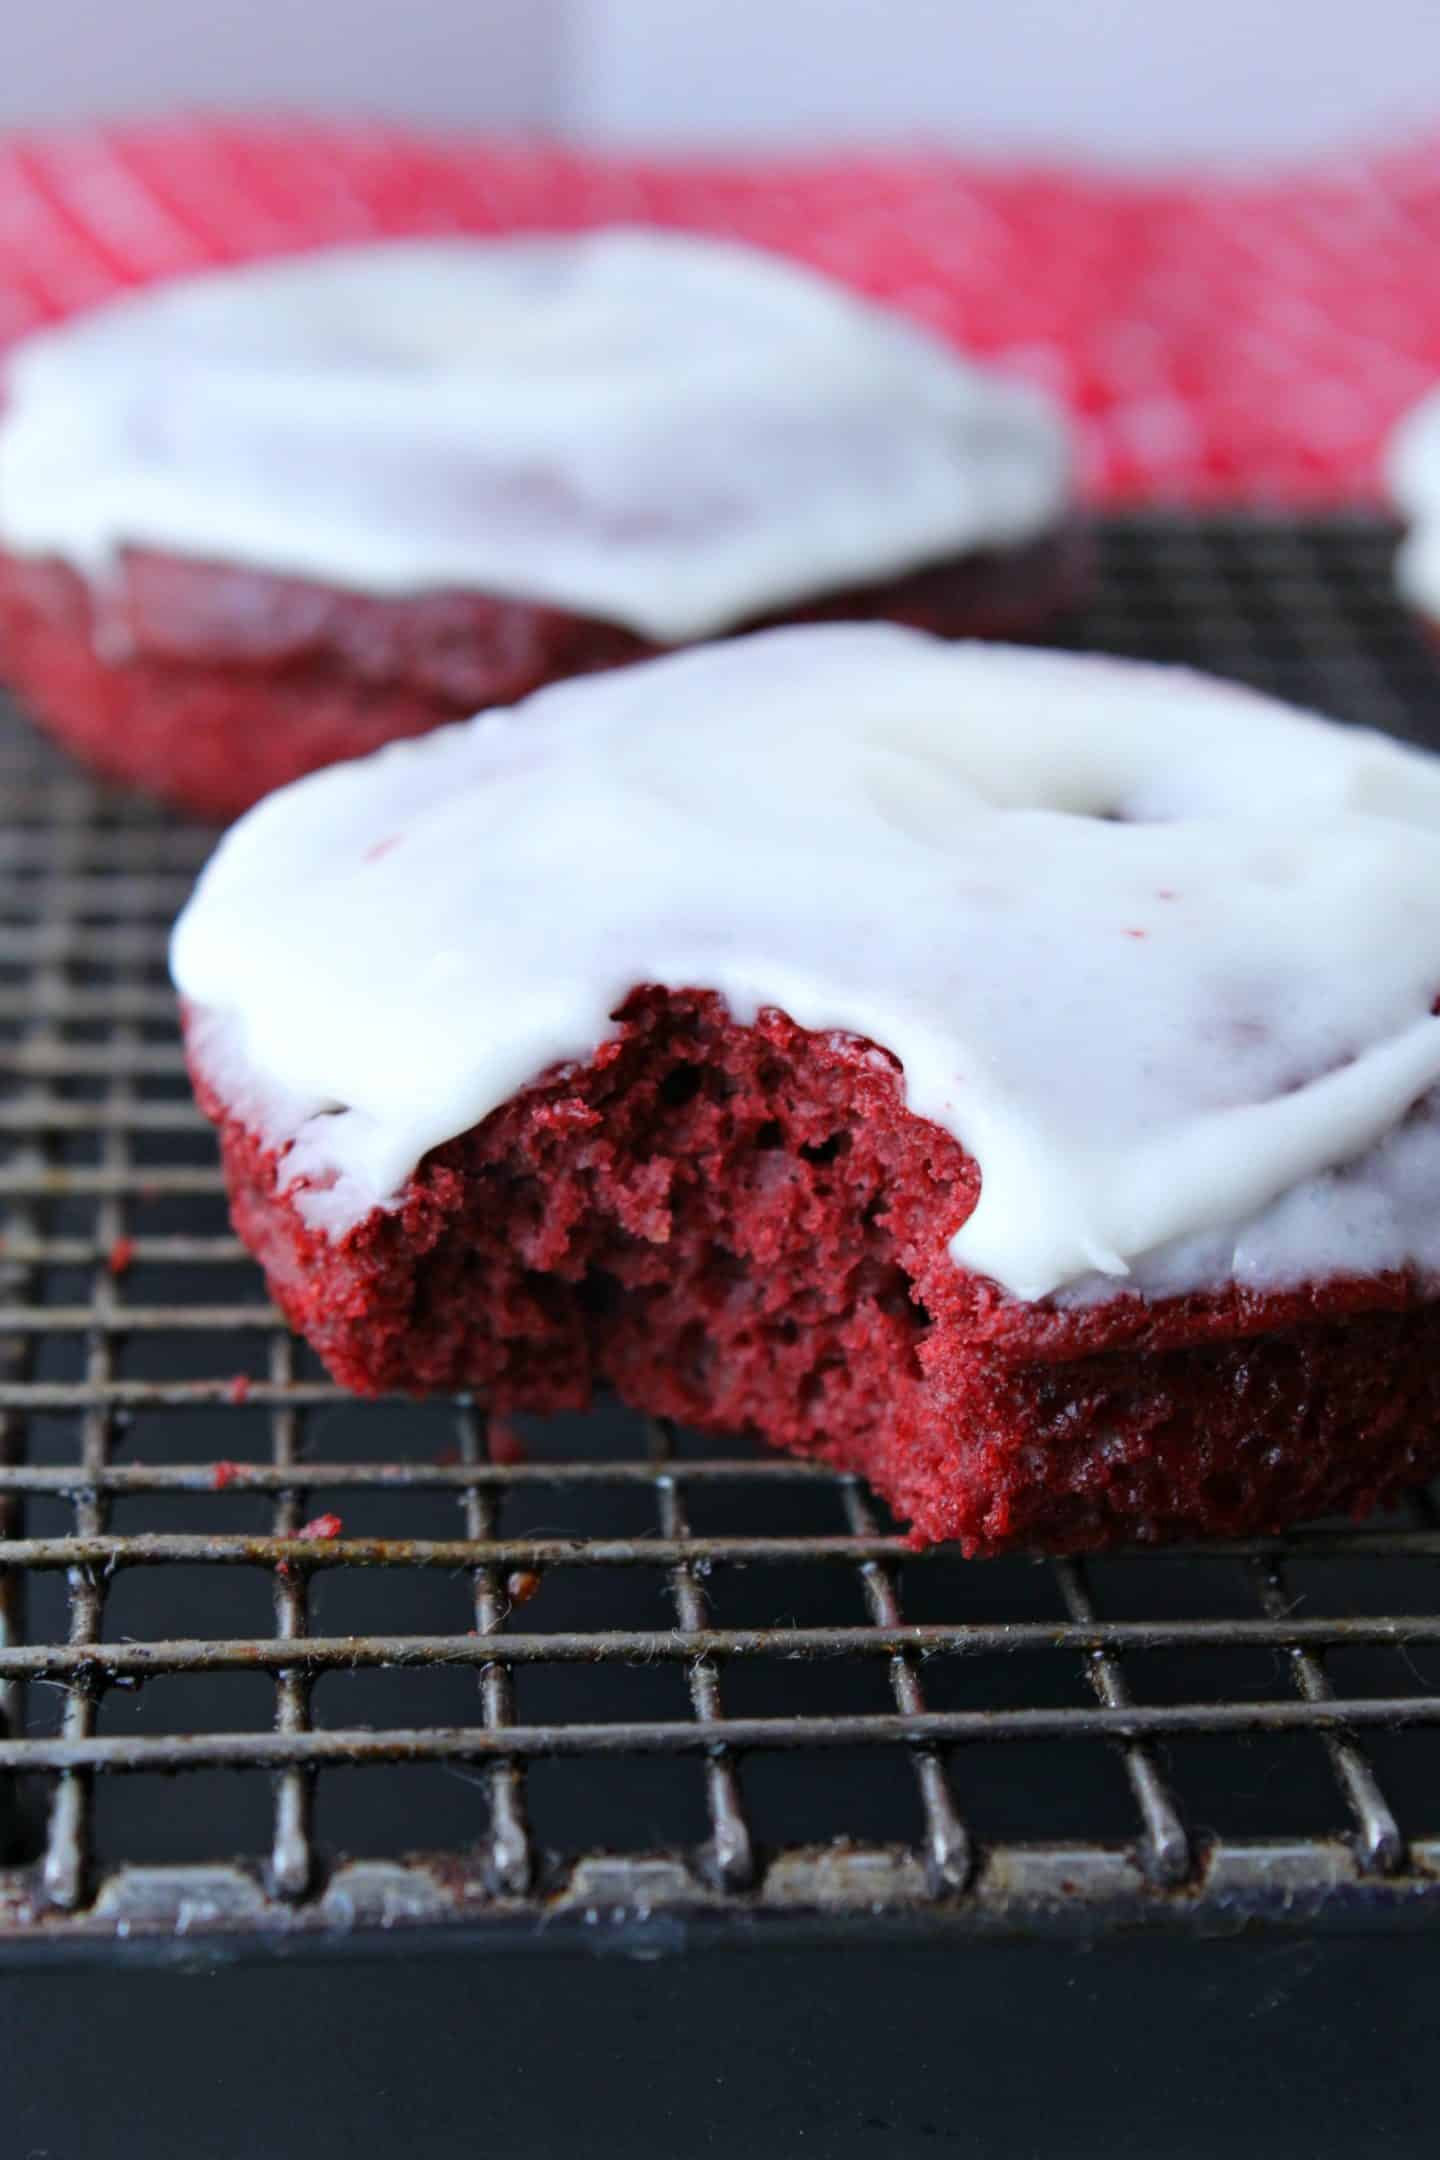 Baked Red Velvet Donuts with Cream Cheese Frosting